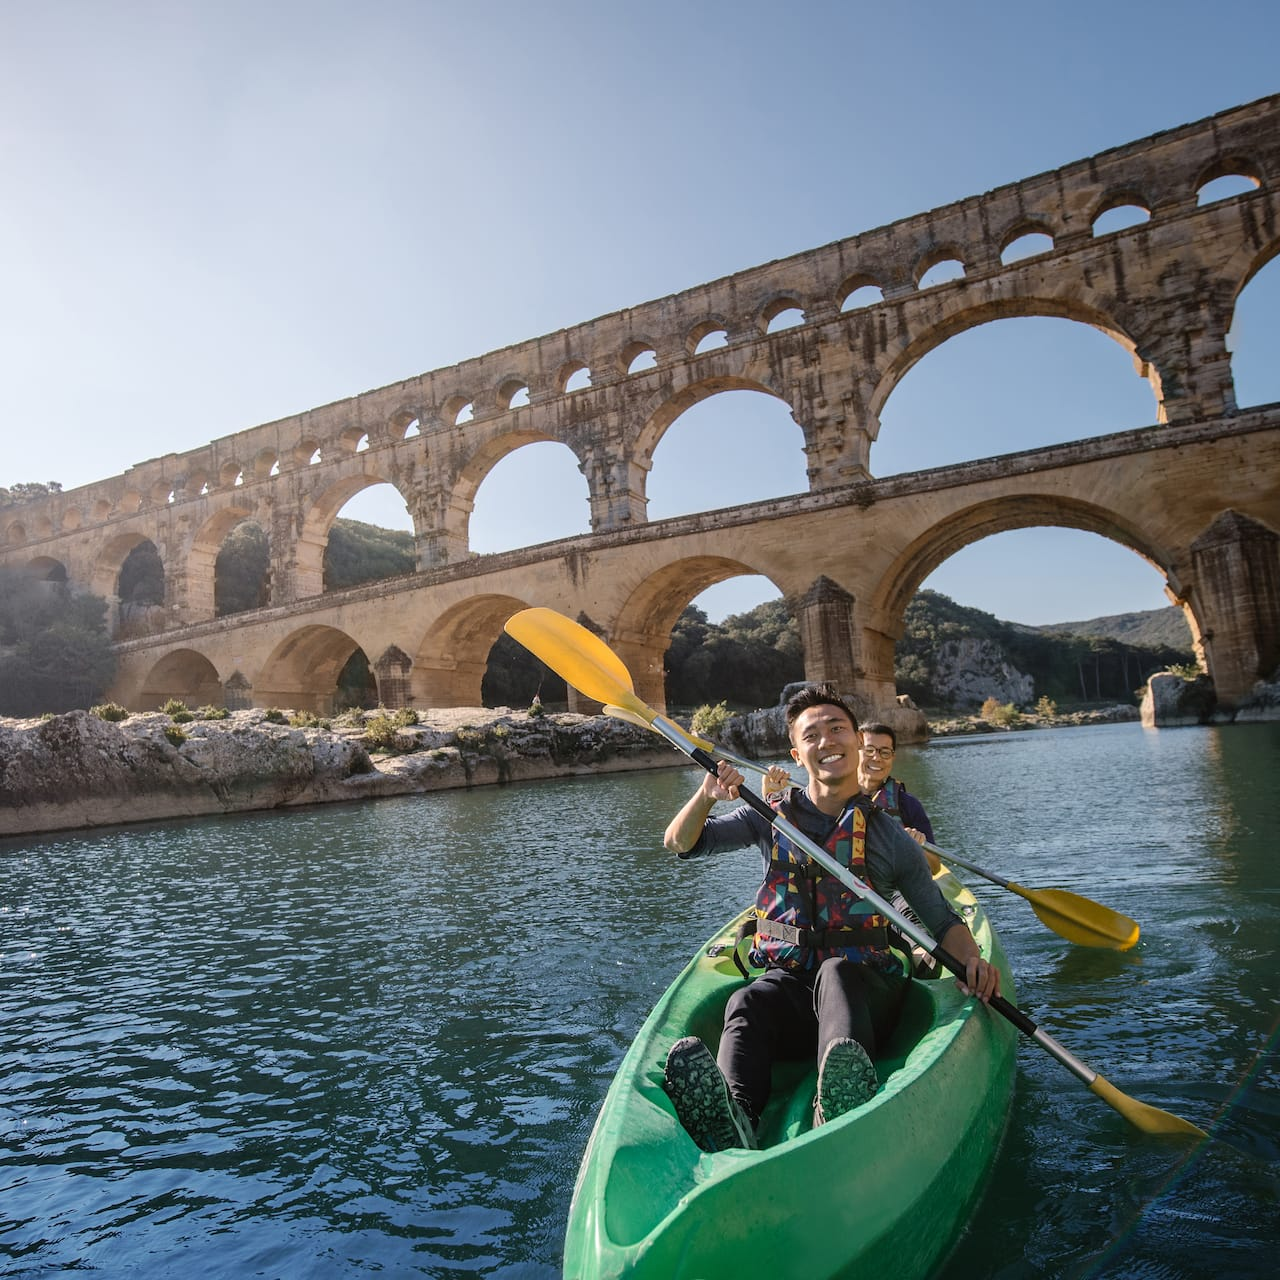 A pair of Adventurers kayak in the river near the Pont du Gard aqueduct